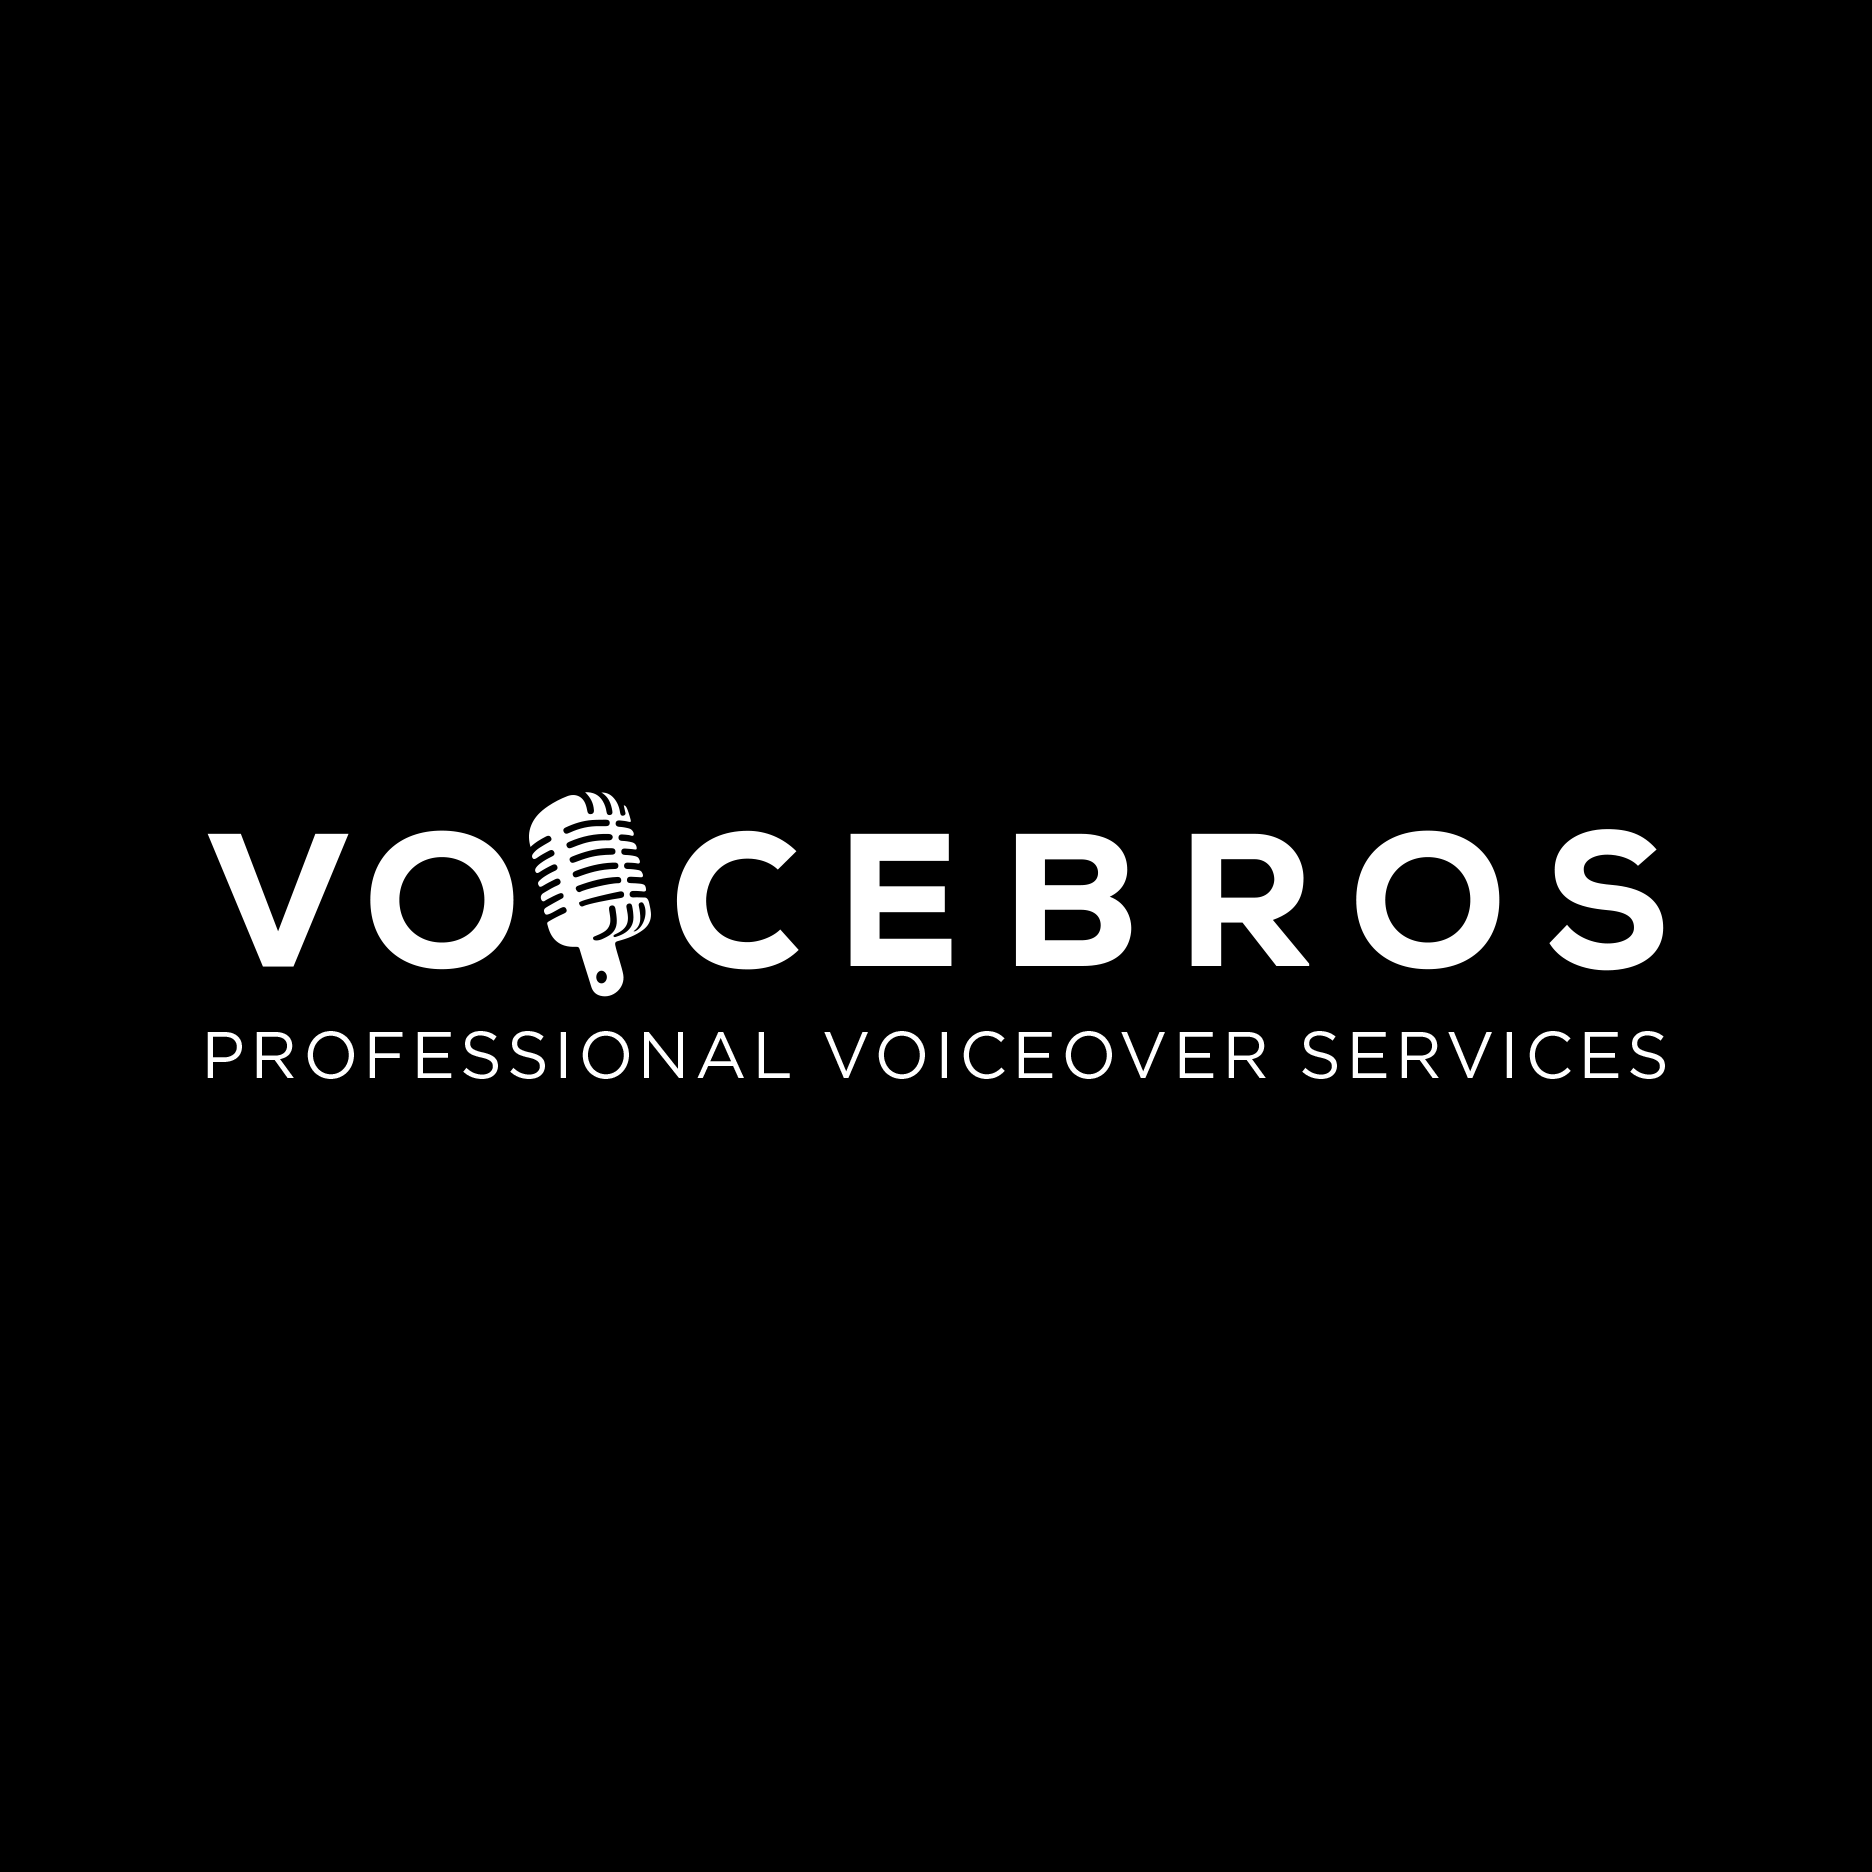 Darren Polish is a voice over actor